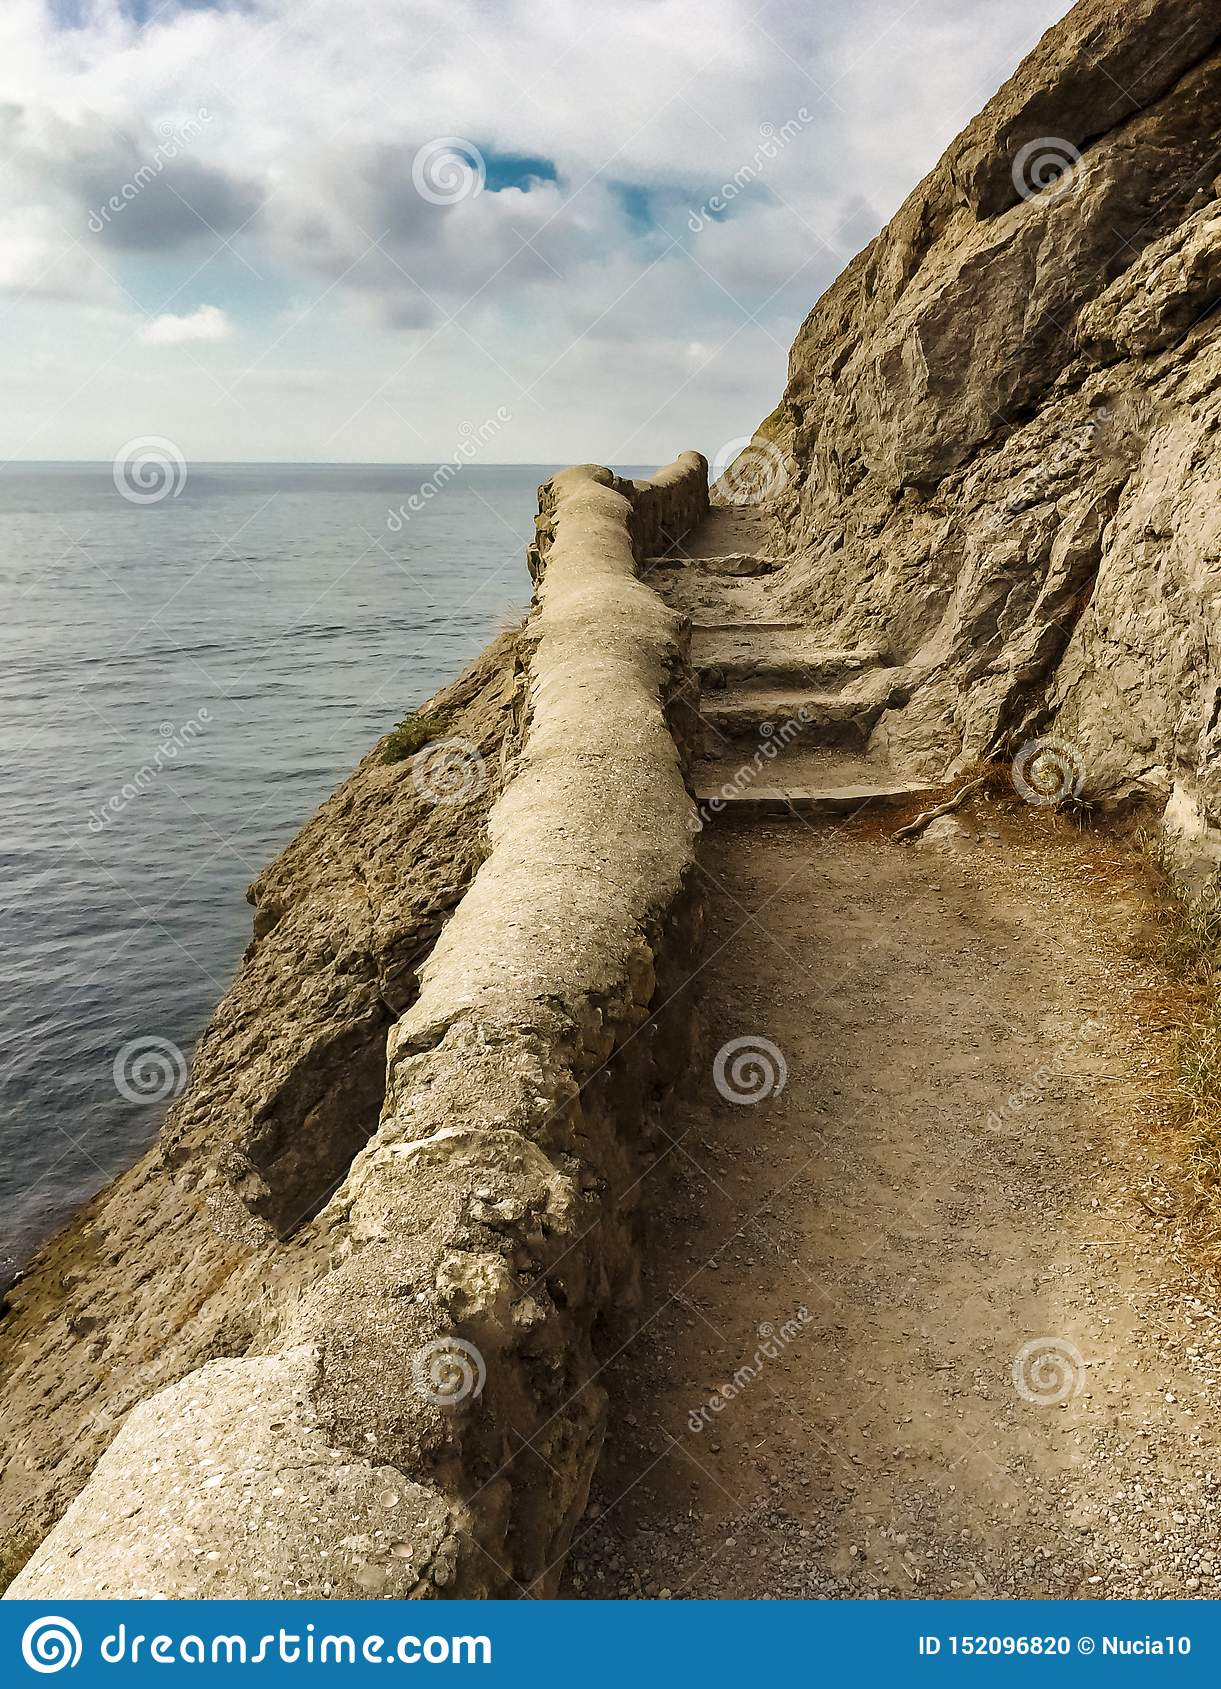 Edge of the cliff with an ancient stone path along the sea with stone steps against the sea and clouds, vertical frame